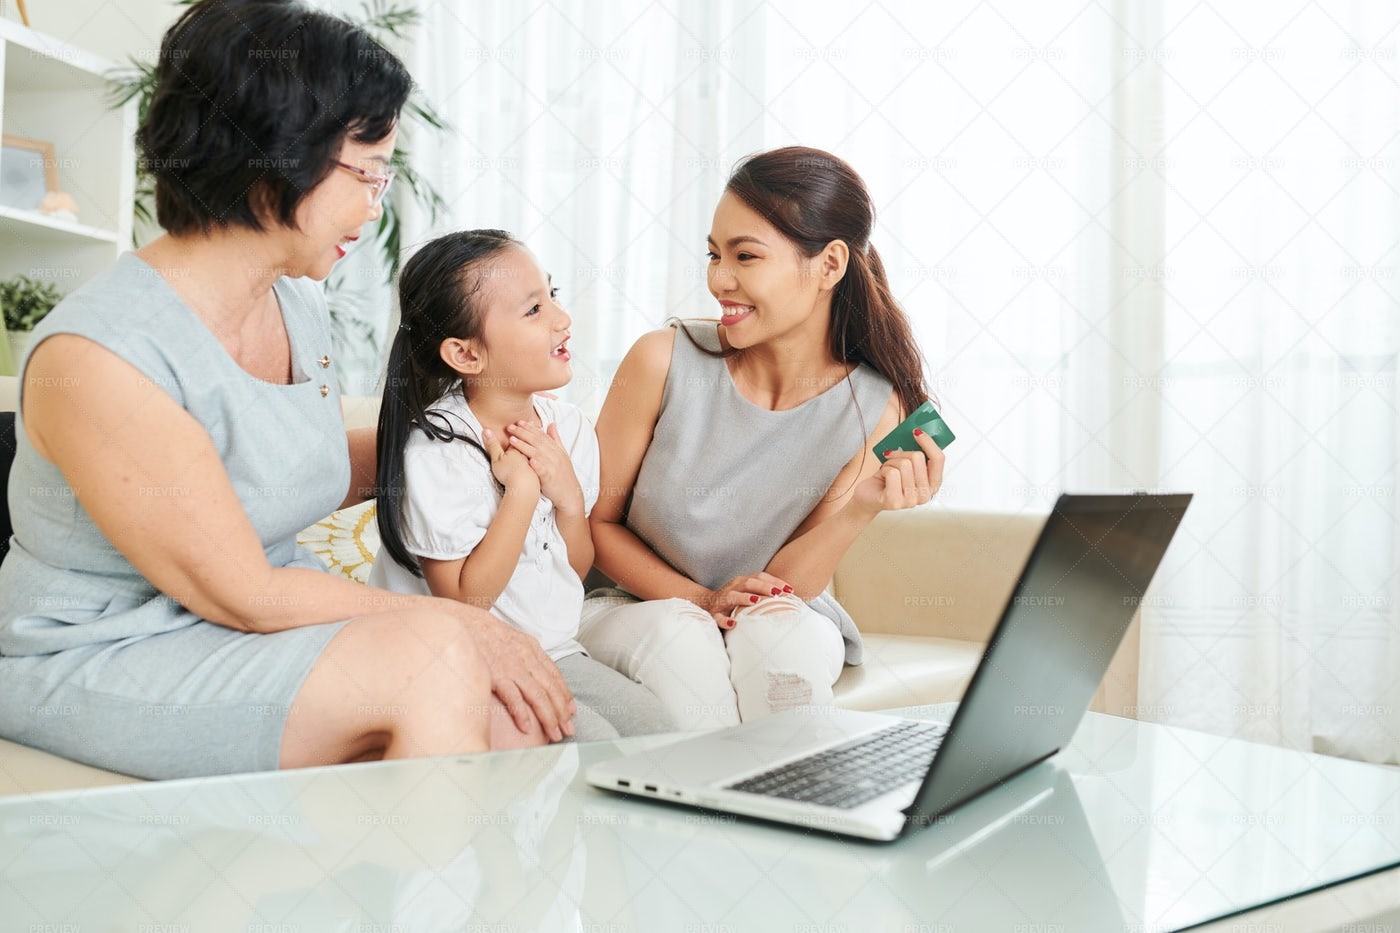 Buying Present Online For Daughter: Stock Photos